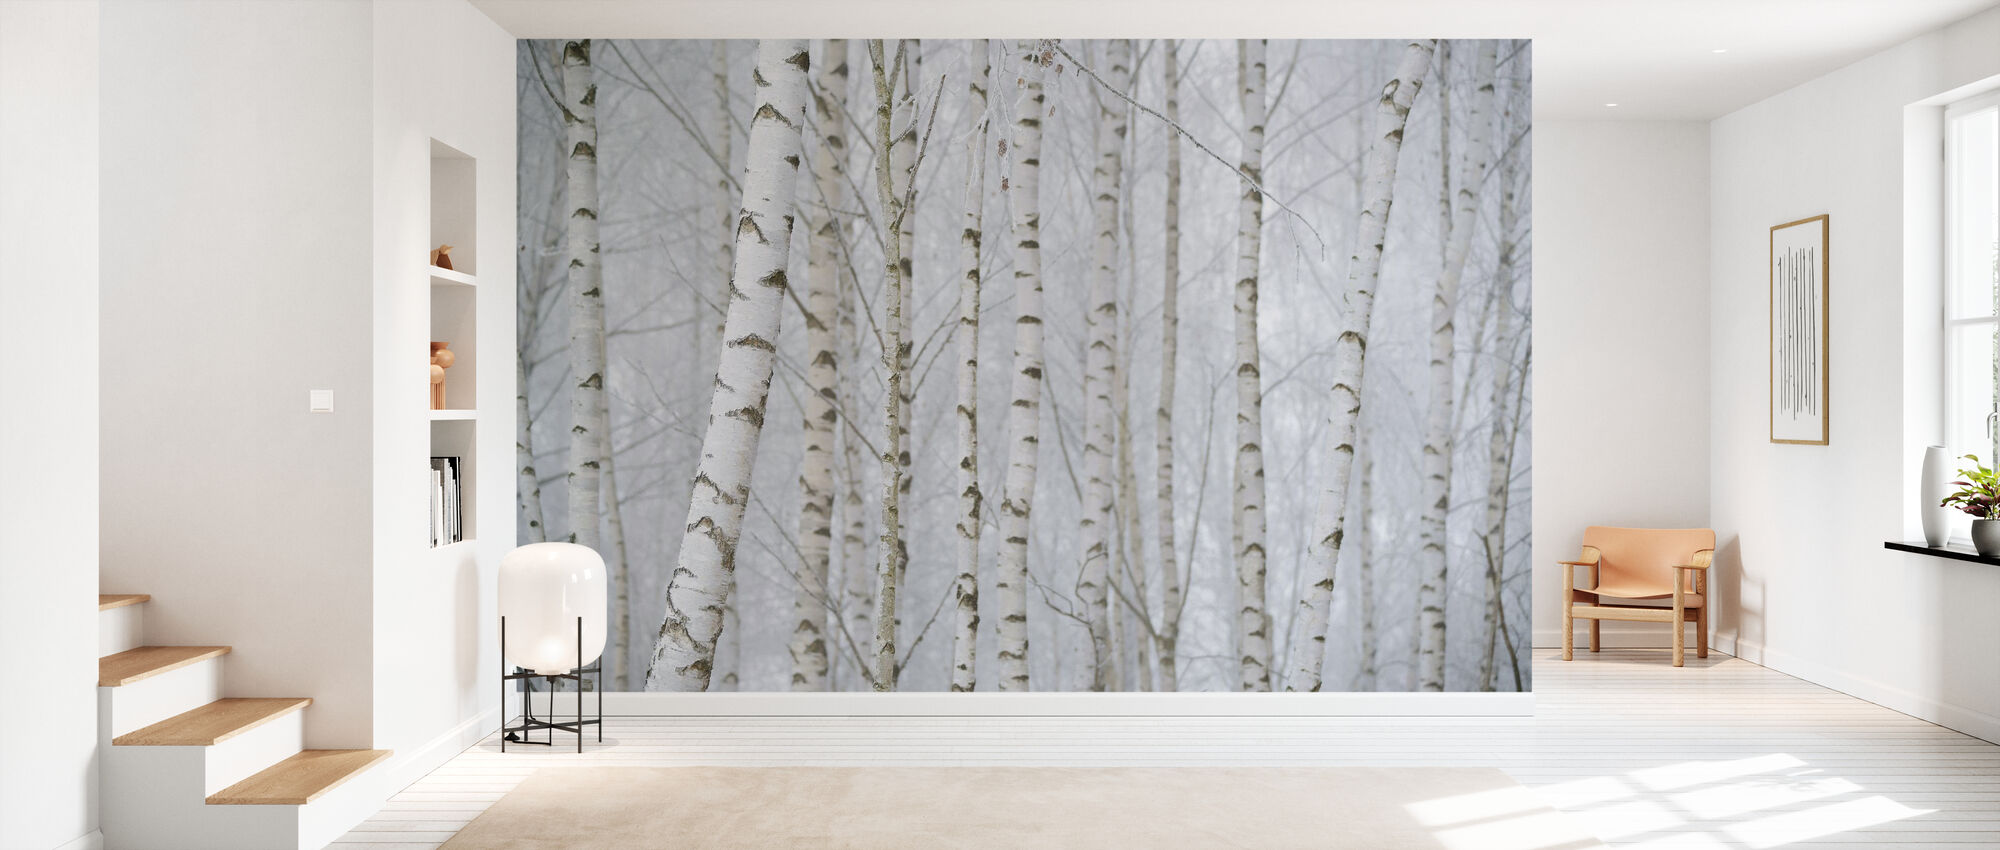 Birch Tree Forest - Wallpaper - Hallway